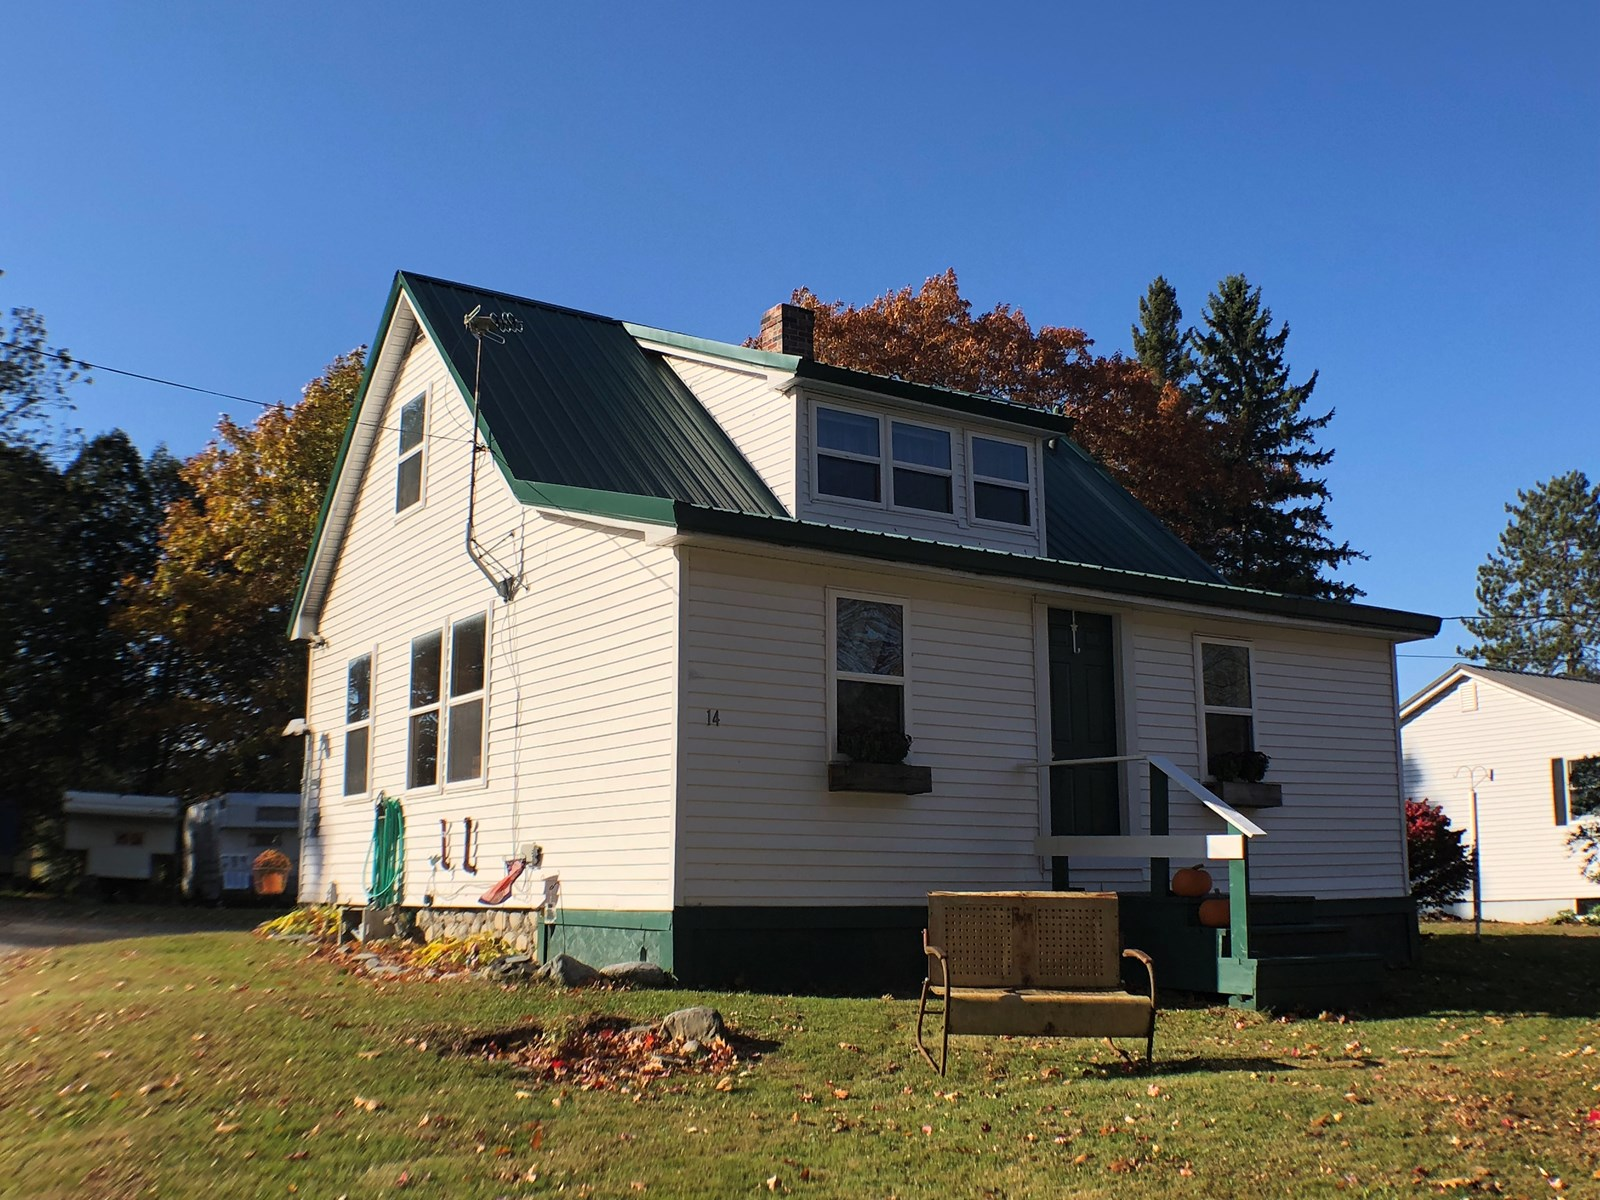 Charming two bedroom cape home for sale in Howland Maine.